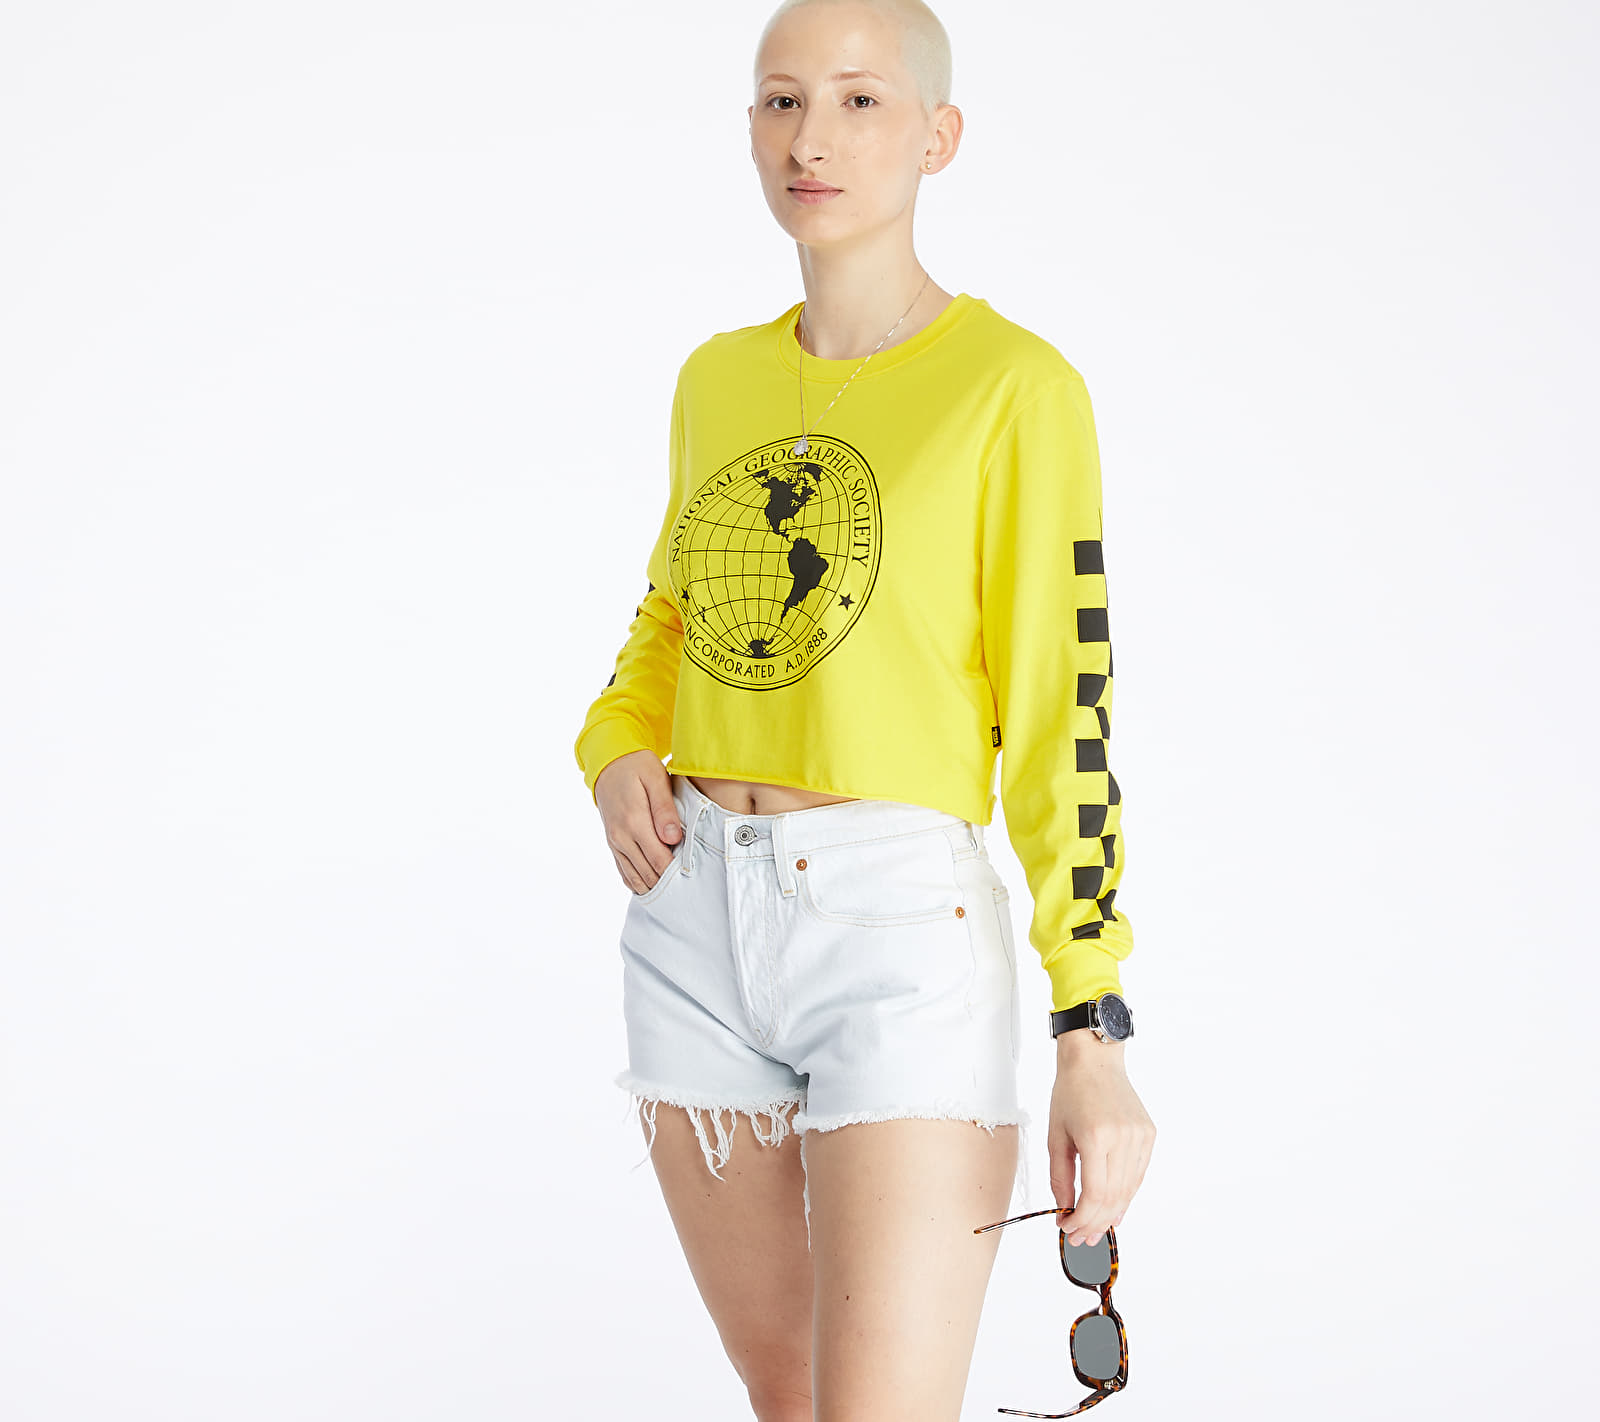 Vans x National Geographic Longsleeve Cropped Tee Cyber Yellow